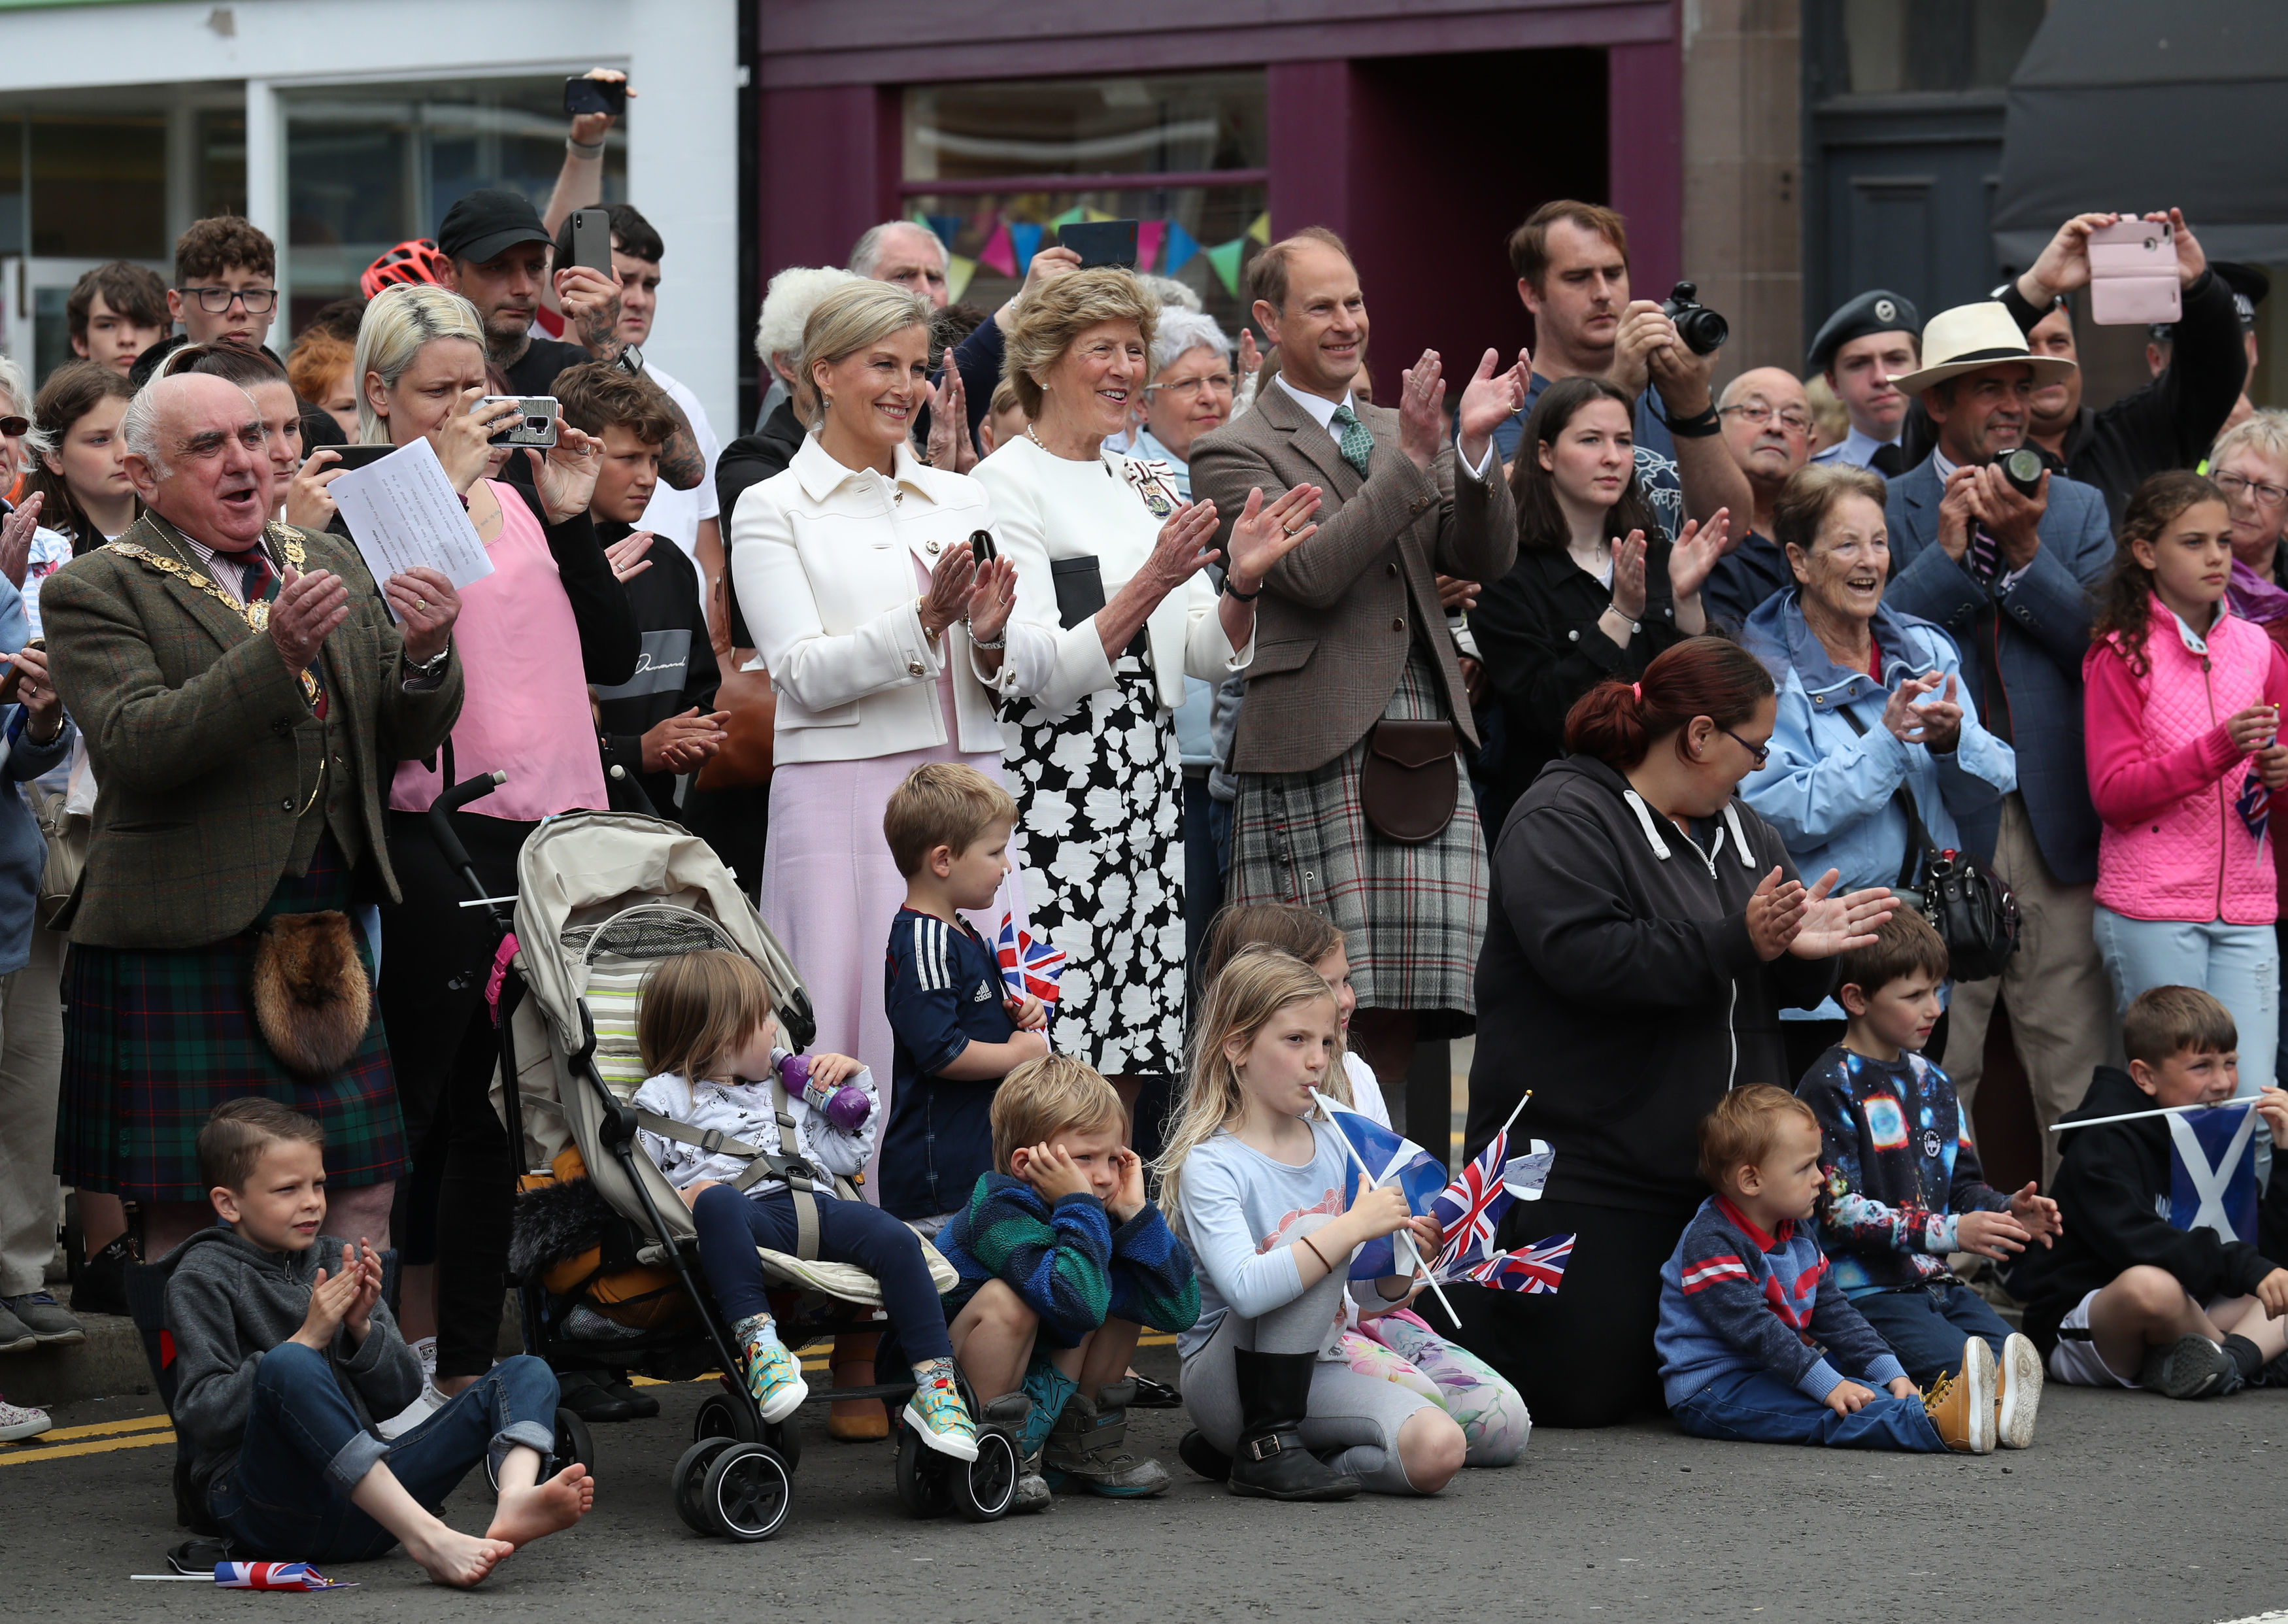 Lord Lieutenant Mrs Osborne applauds a Highland Dancing display with the new Earl and Countess of Forfar on their first visit to the town in July.